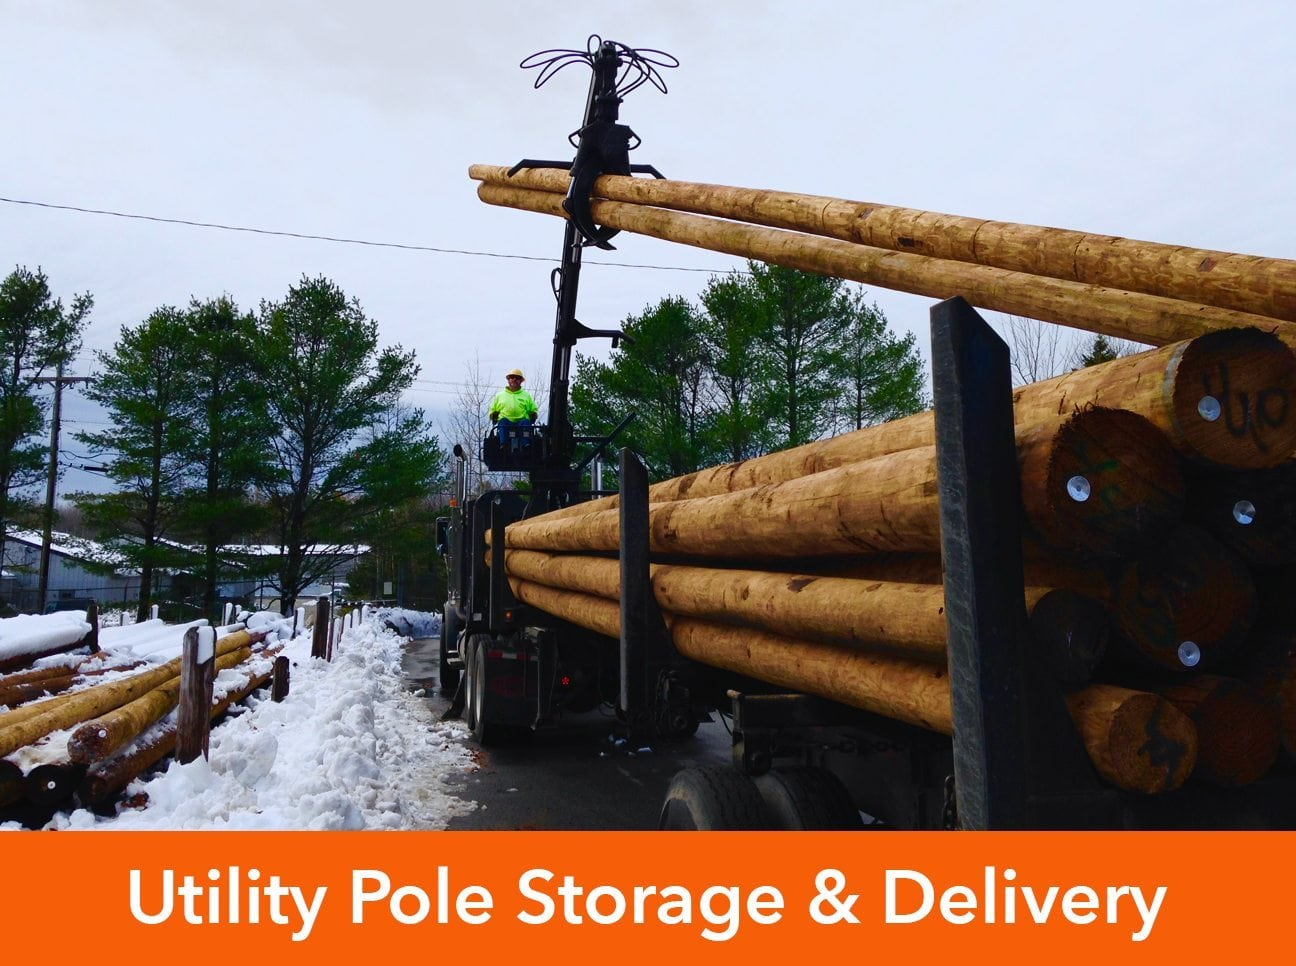 Utility pole storage and delivery – P&CG – Power & Construction